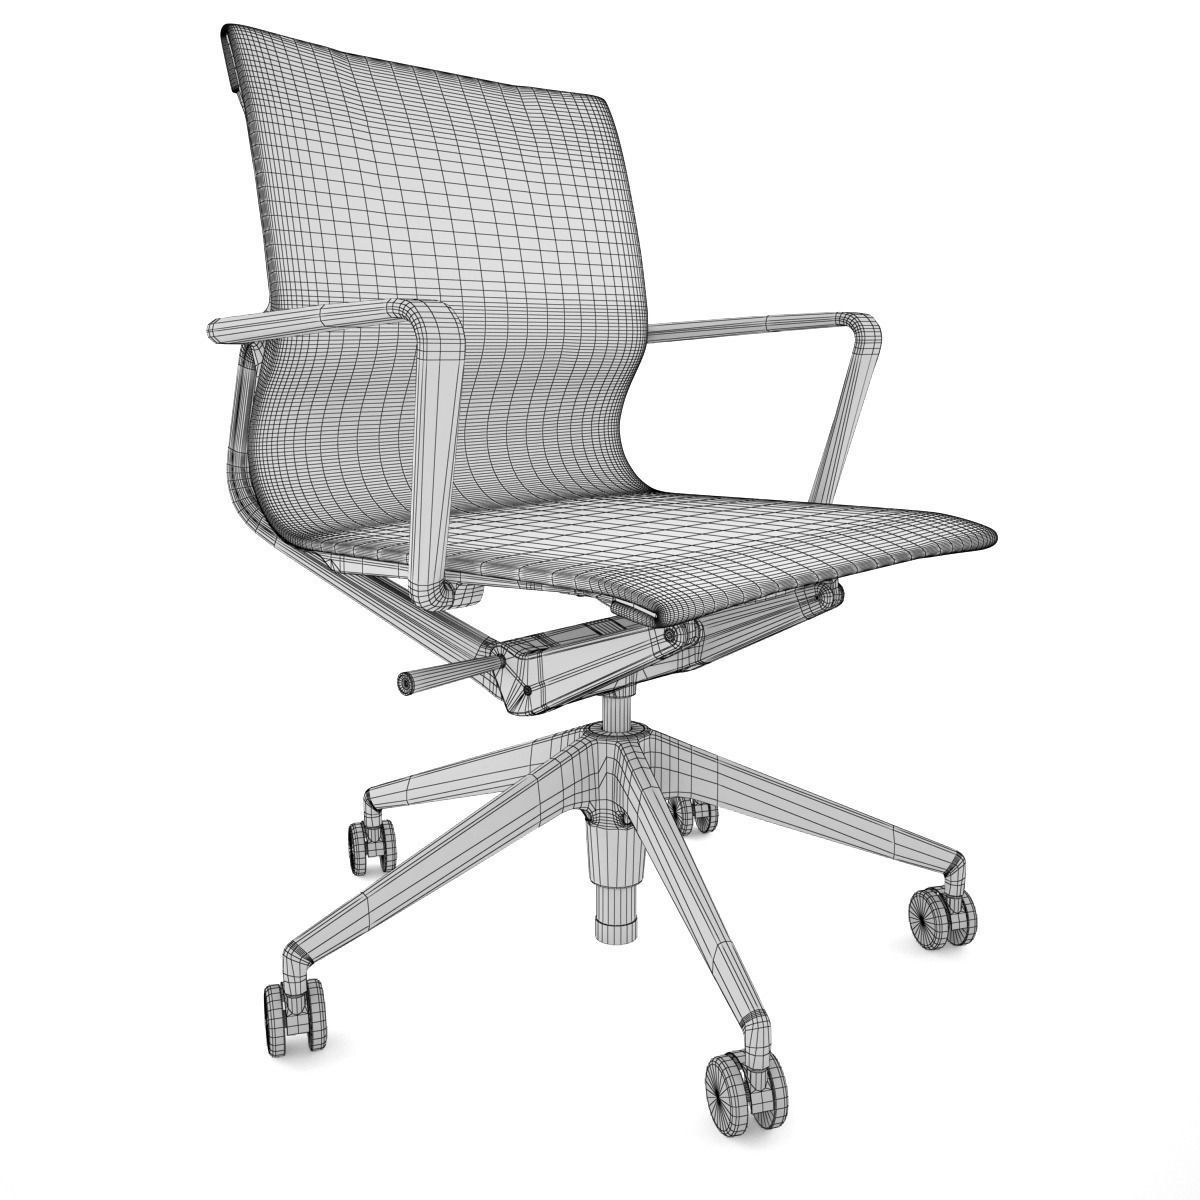 Vitra Office Chair Vitra Physix Office Chair 3d Model Max Obj Fbx